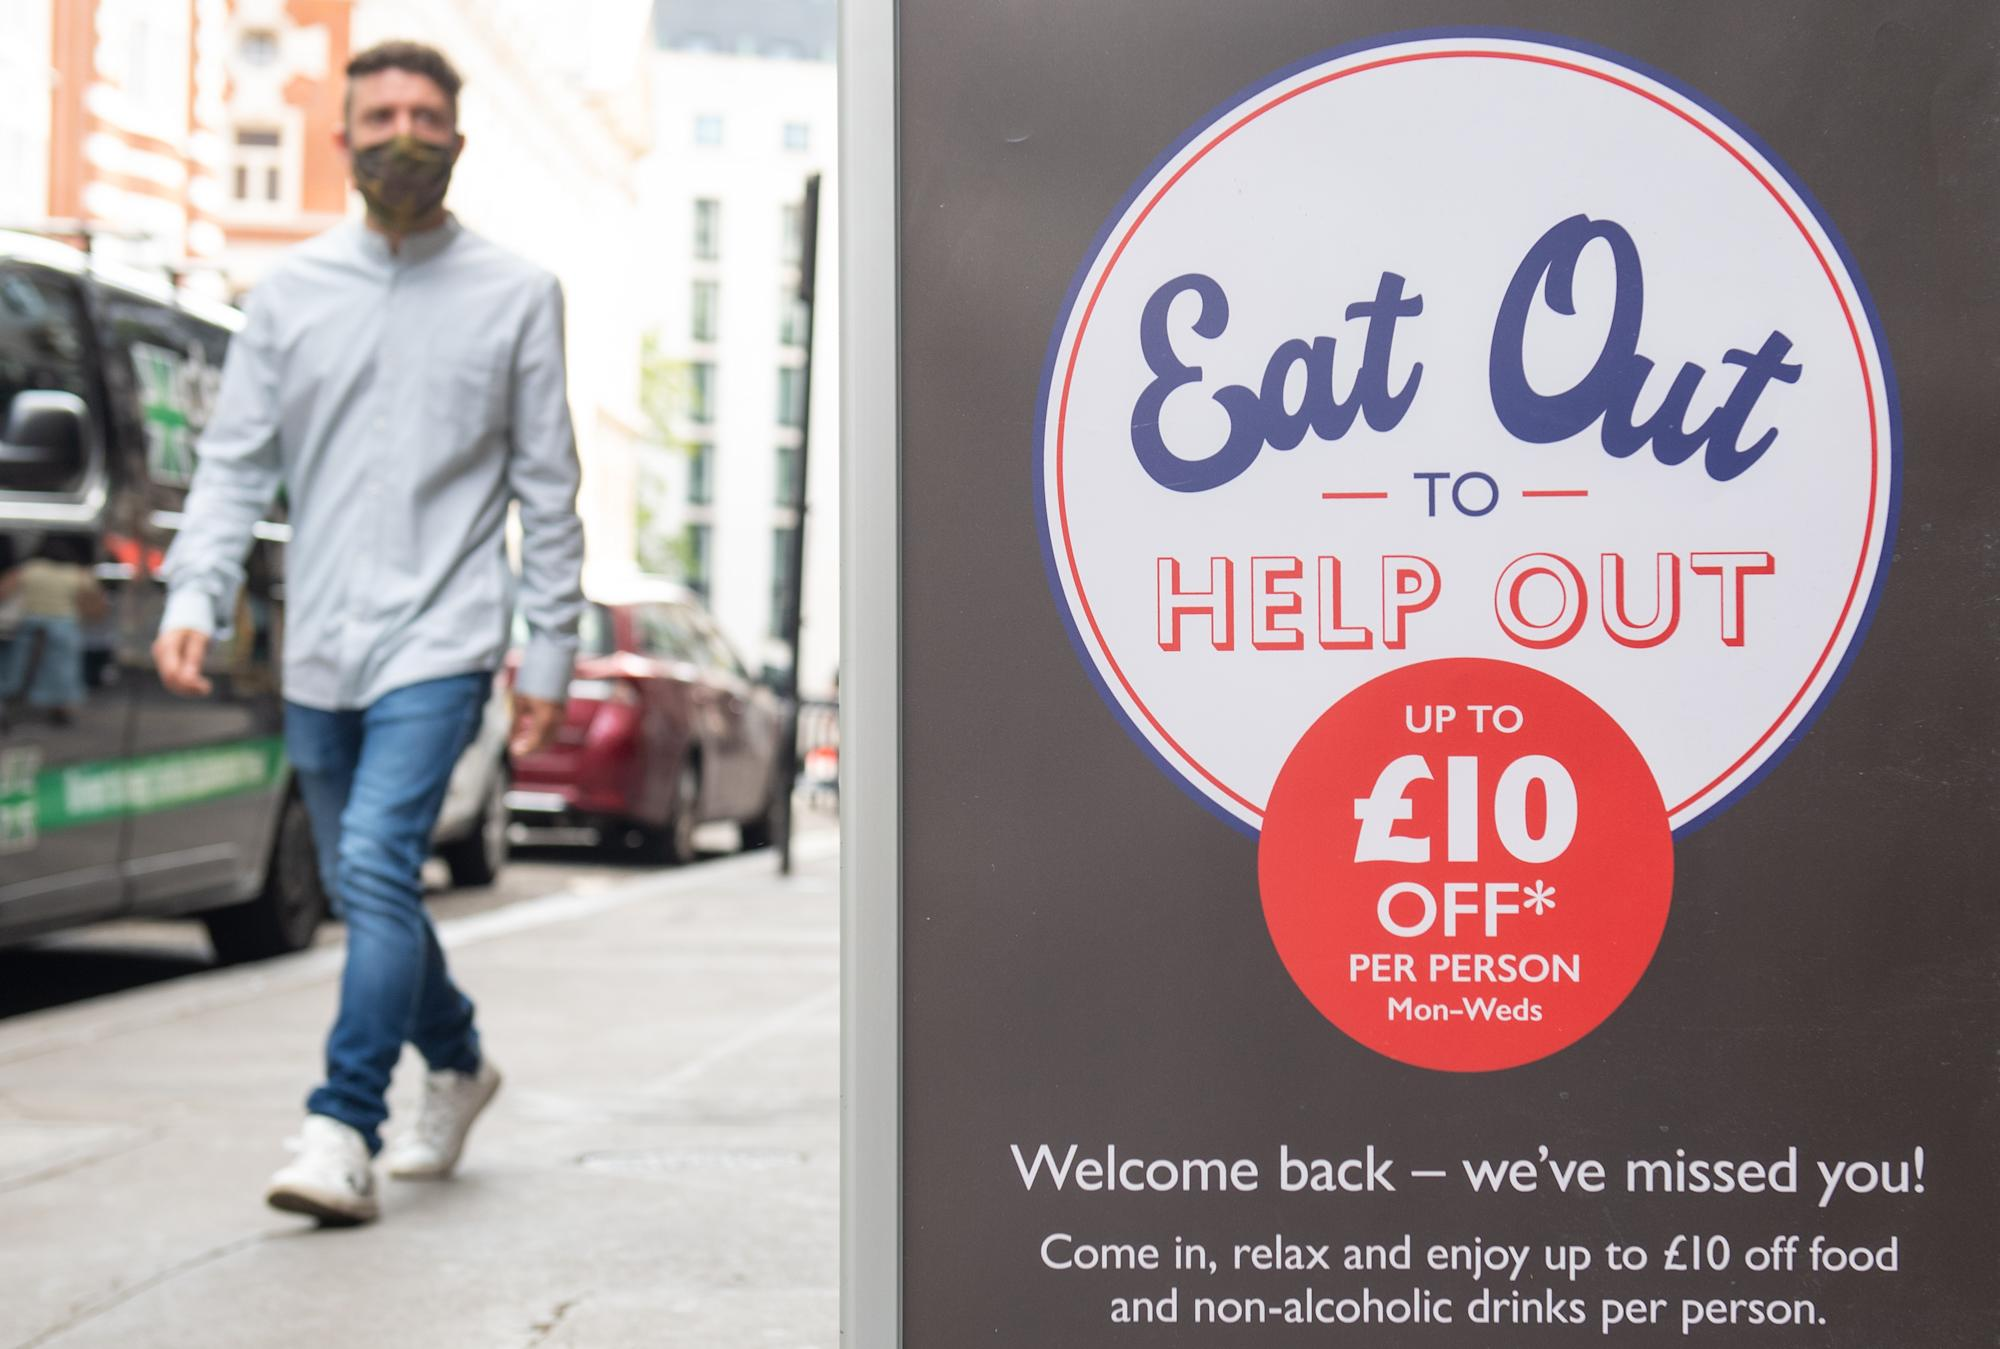 Eat Out to Help Out claims reach £850m — but UK only budgeted £500m